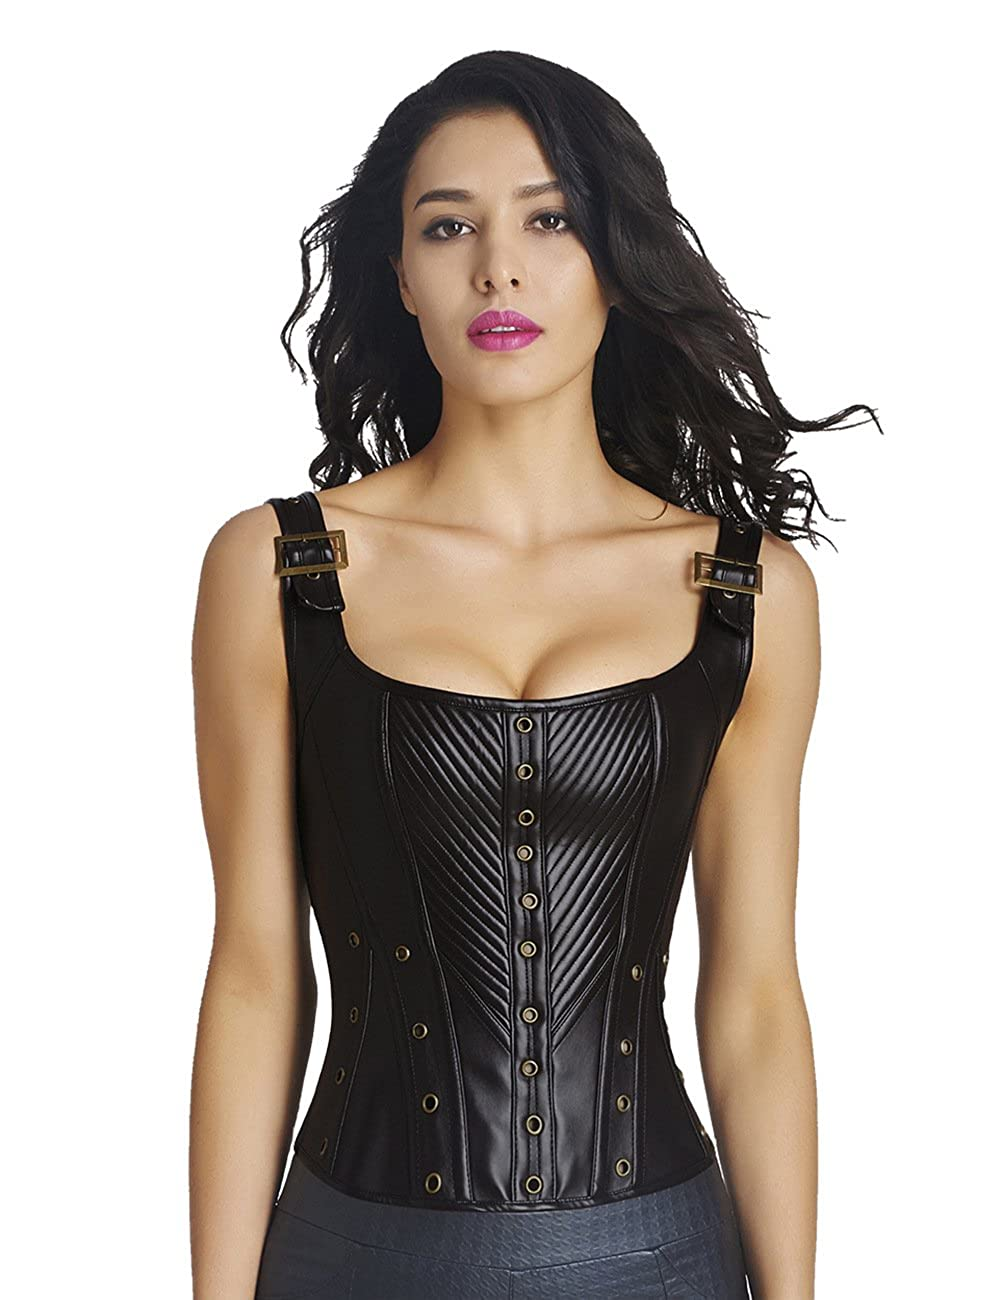 CLOUDY.LEE Women's Steampunk Strap Bustier Gothic Black Leather Corset 8201-XL